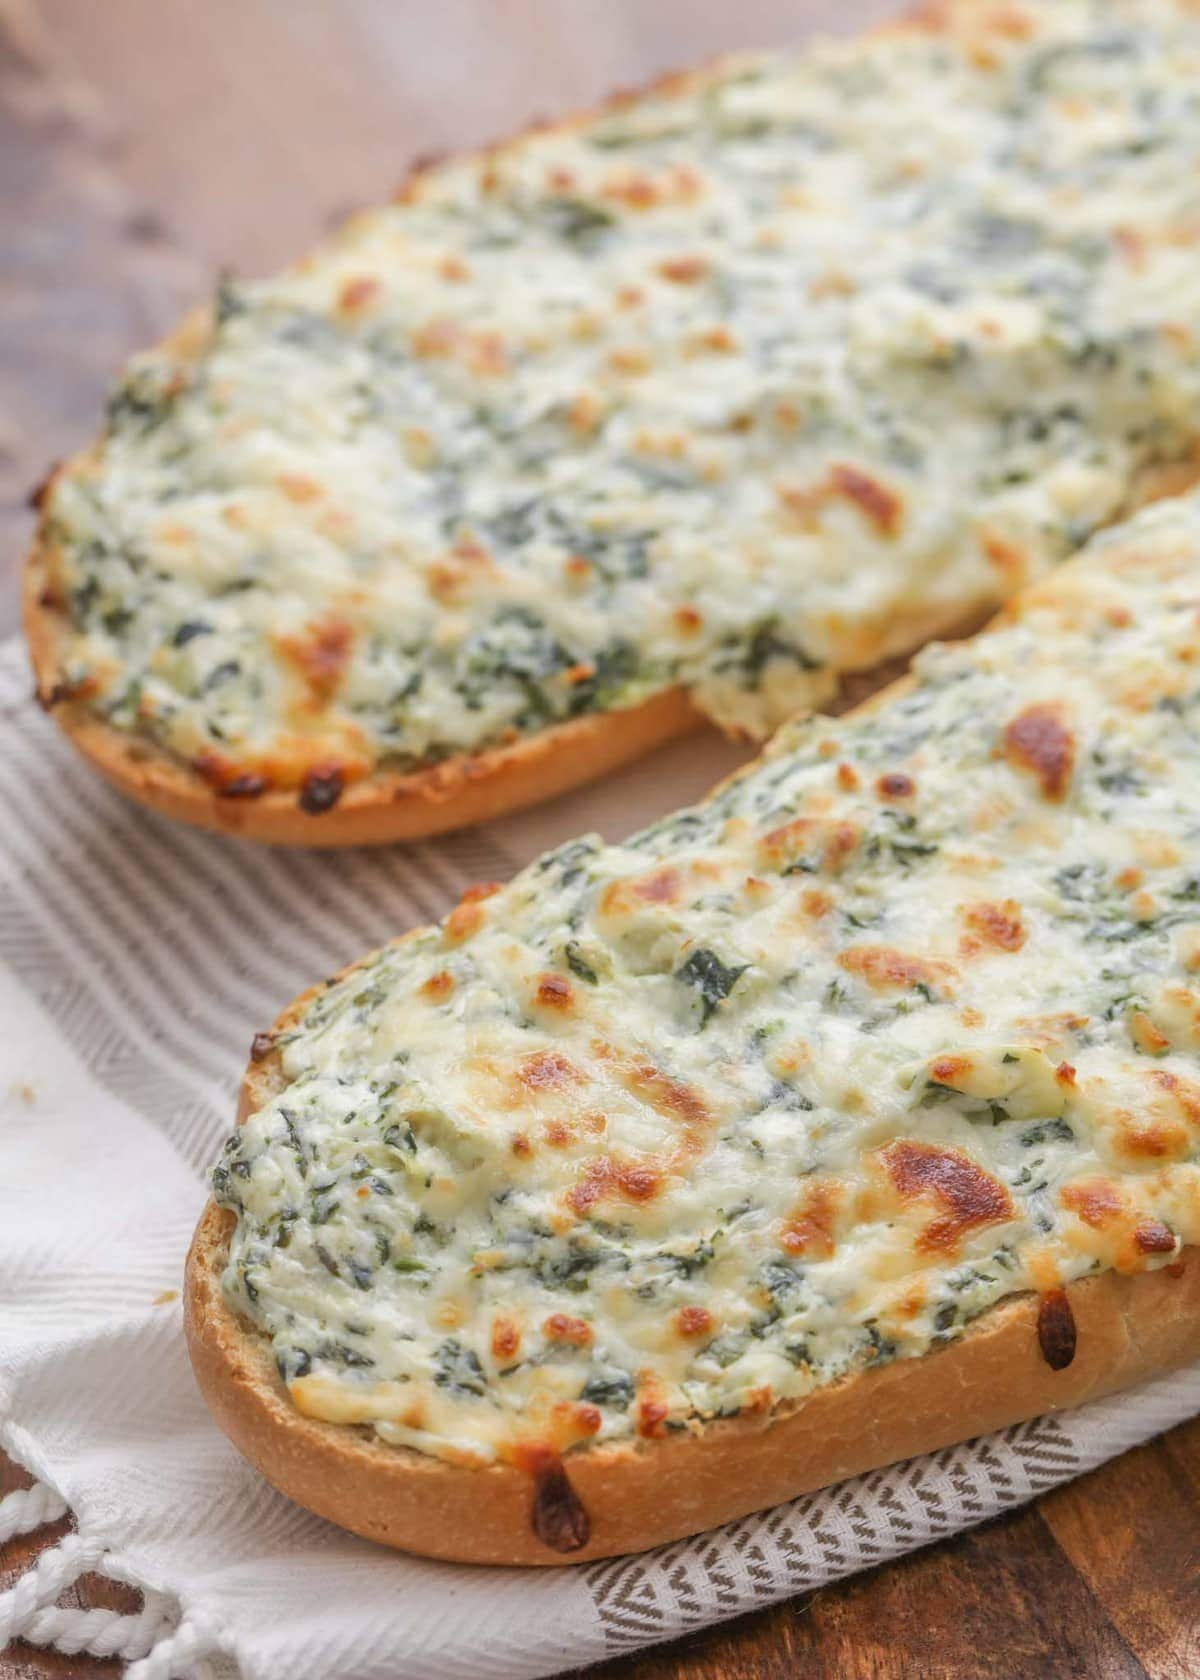 Spinach Artichoke Stuffed Bread